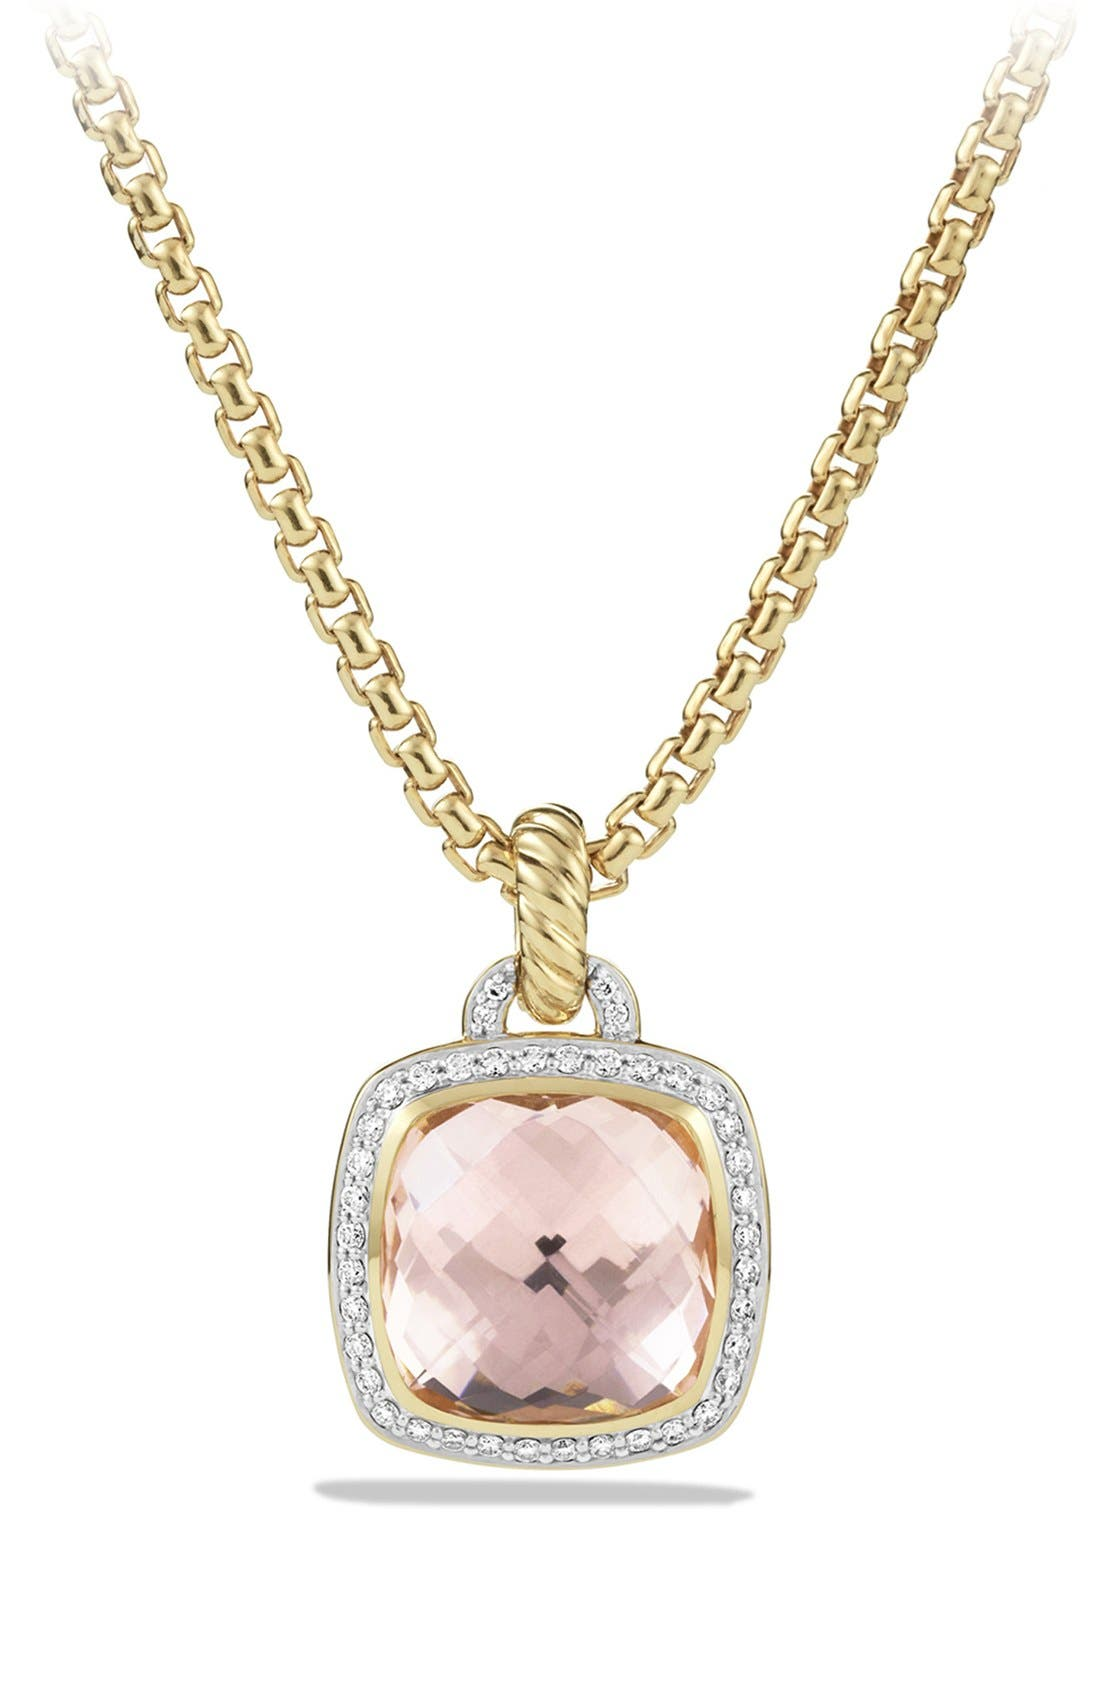 'Albion' Pendant with Lemon Citrine and Diamonds in 18k Gold,                             Main thumbnail 1, color,                             Morganite